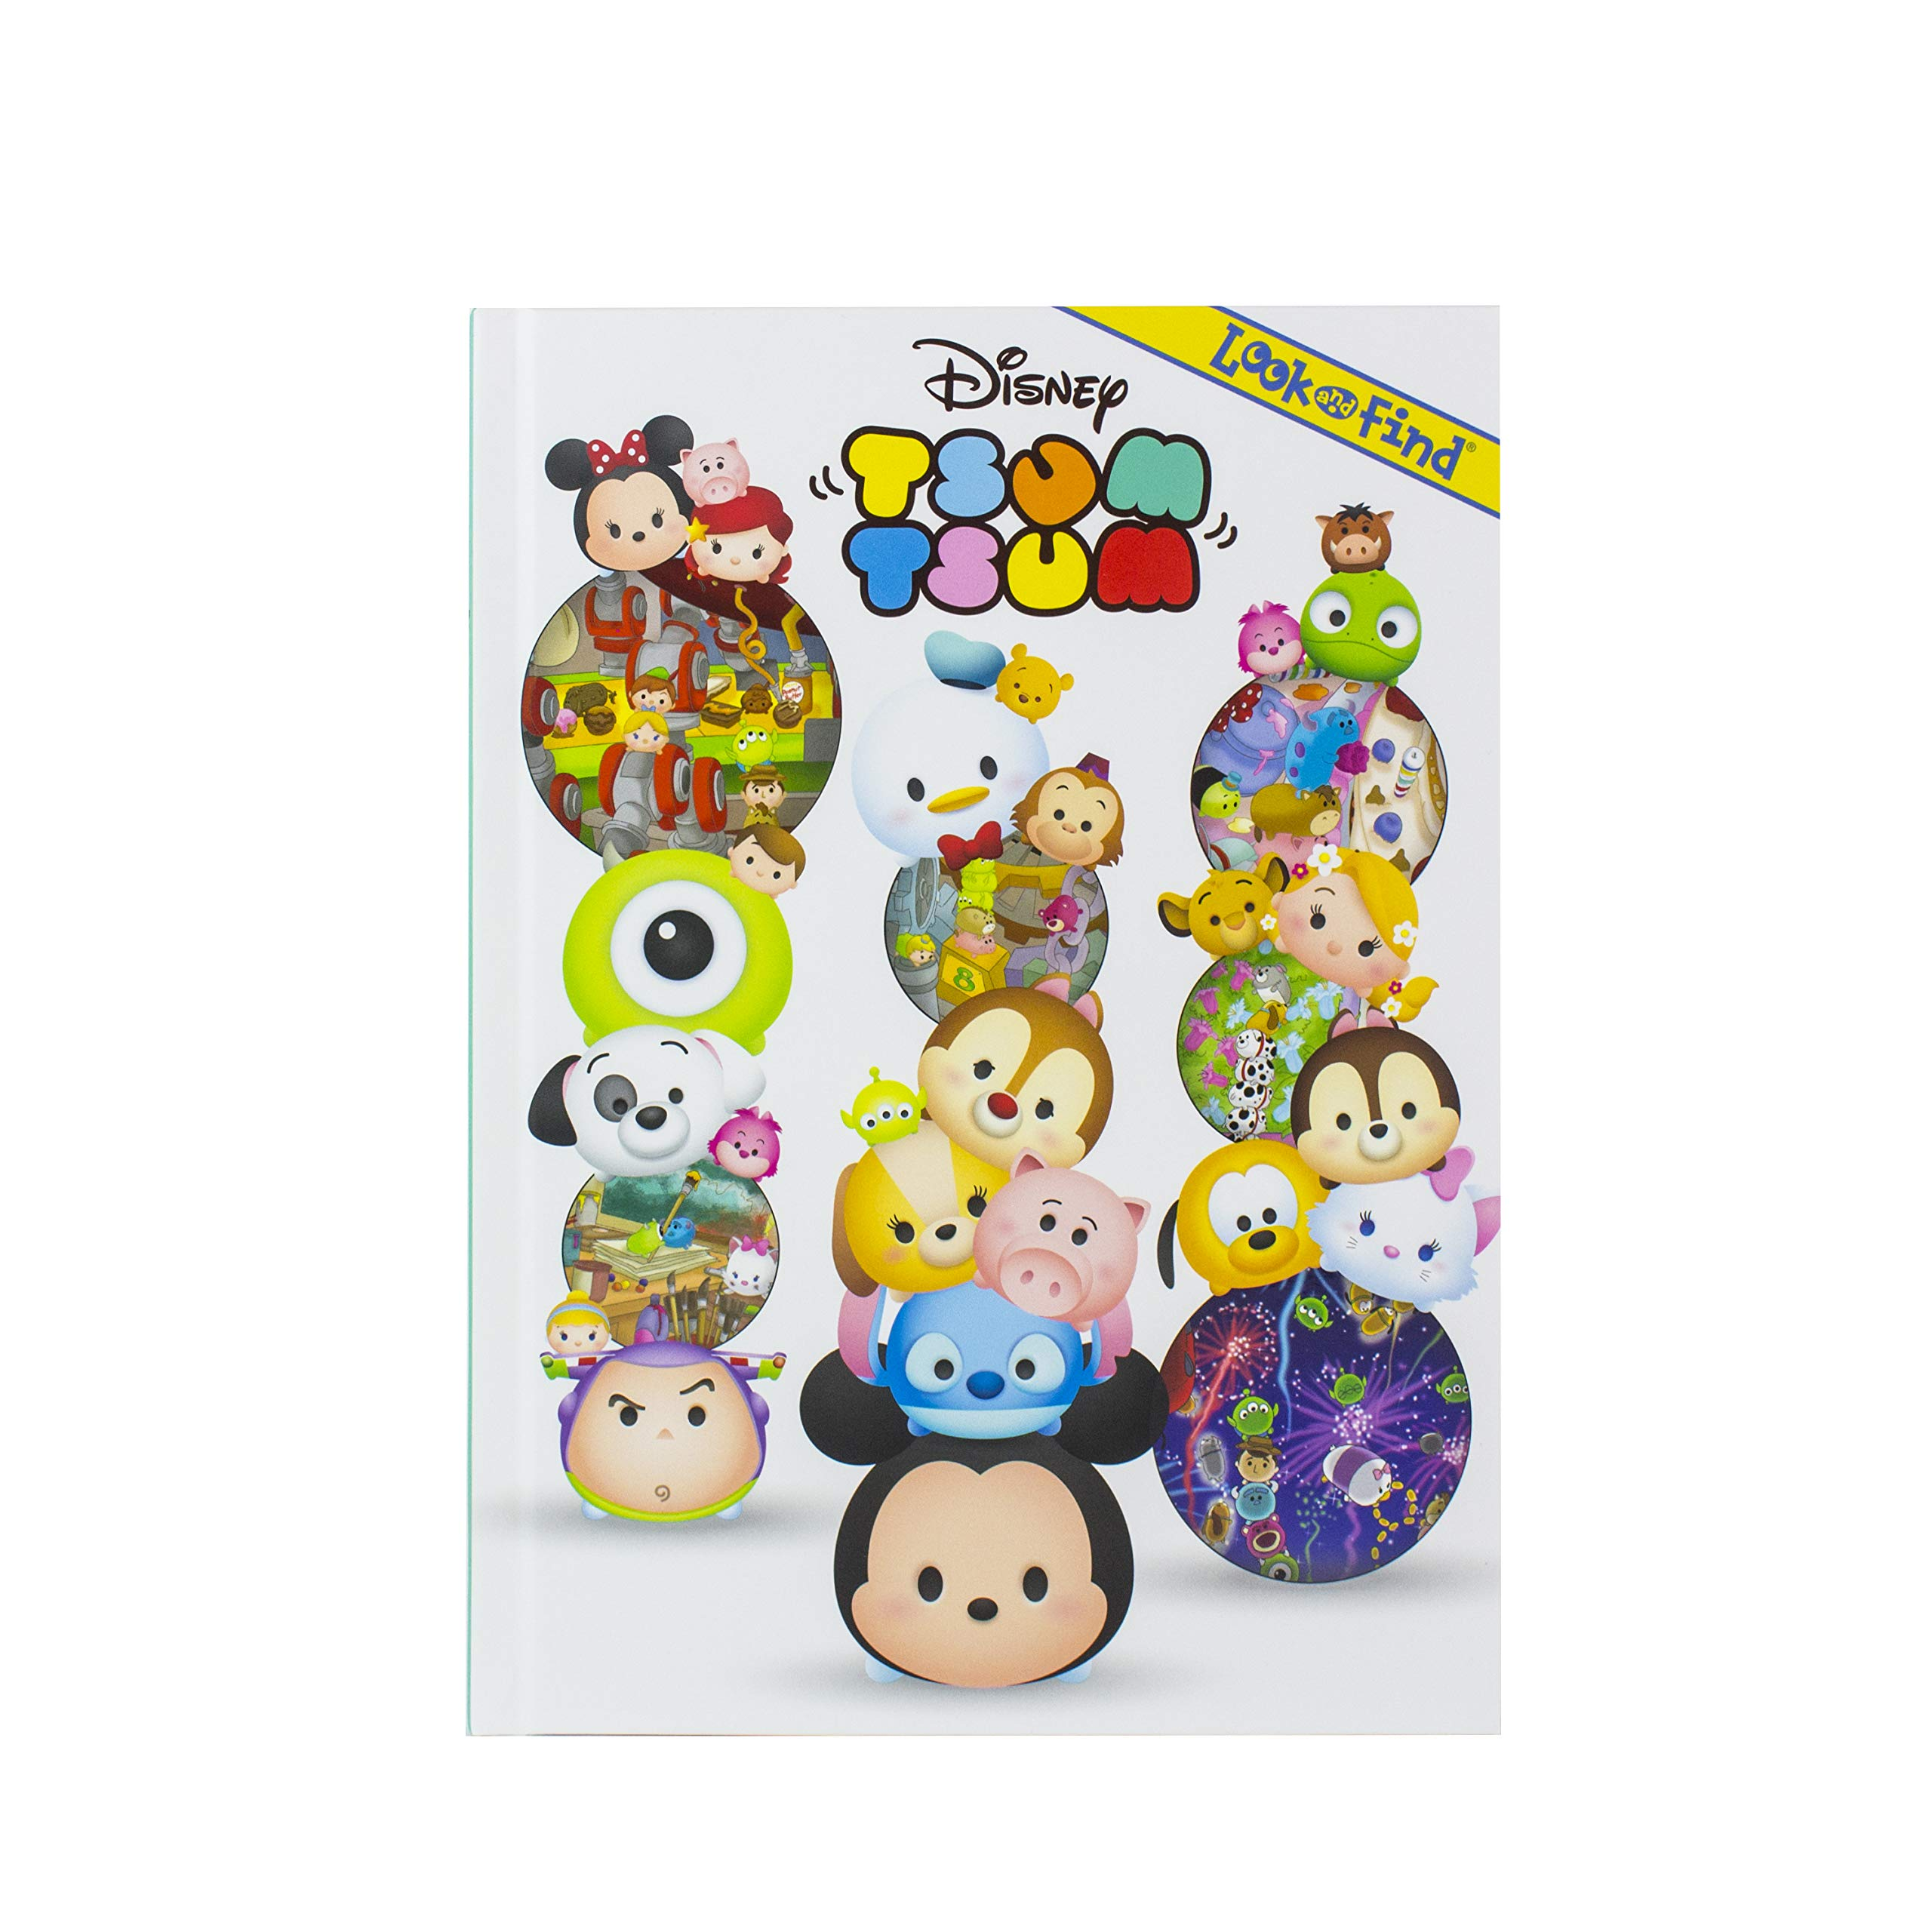 Download Disney - Mickey Mouse , Minnie Mouse, and More! Tsum Tsum Look and Find - PI Kids ebook